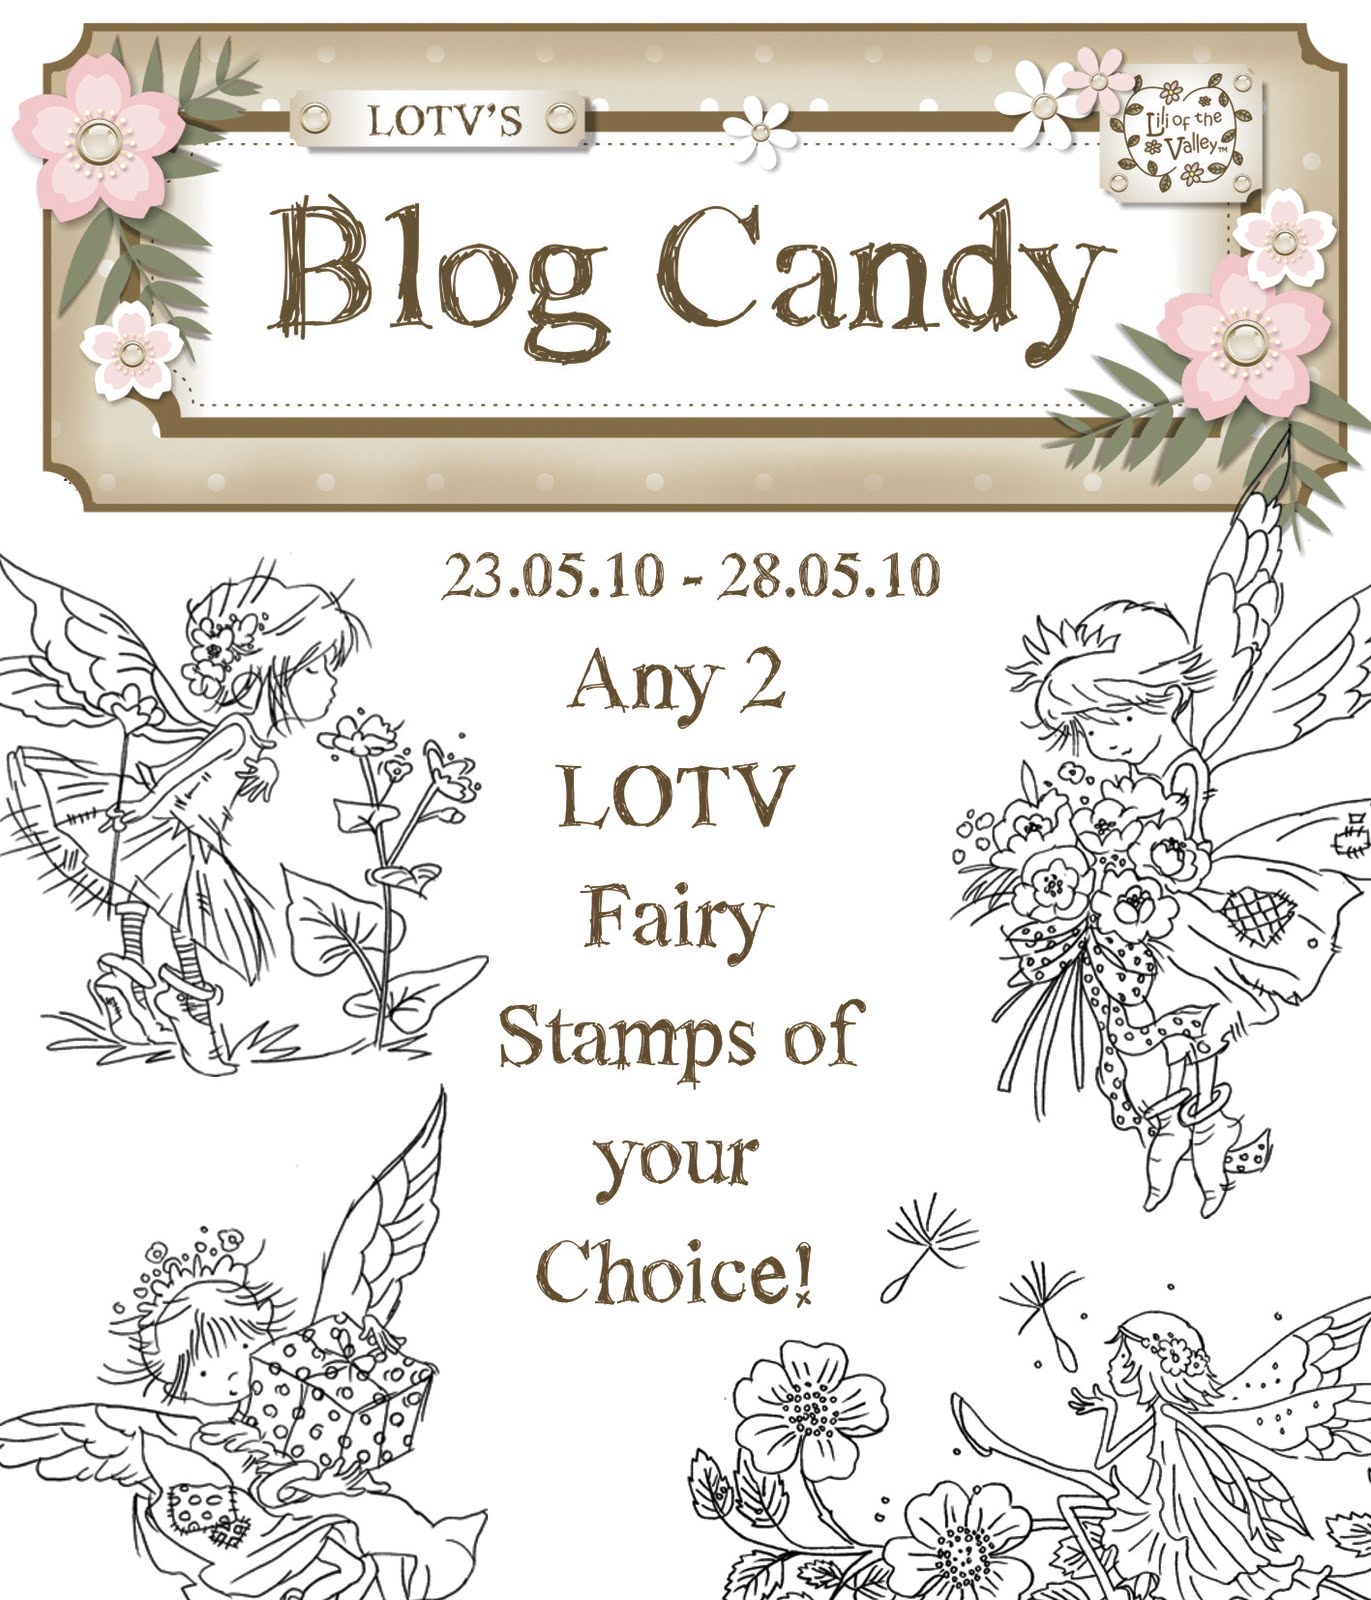 Poppy petal designs lily of the valley blog candy complete 12 lily of the valley blog candy complete 12 stamp release for june 1st wow altavistaventures Image collections